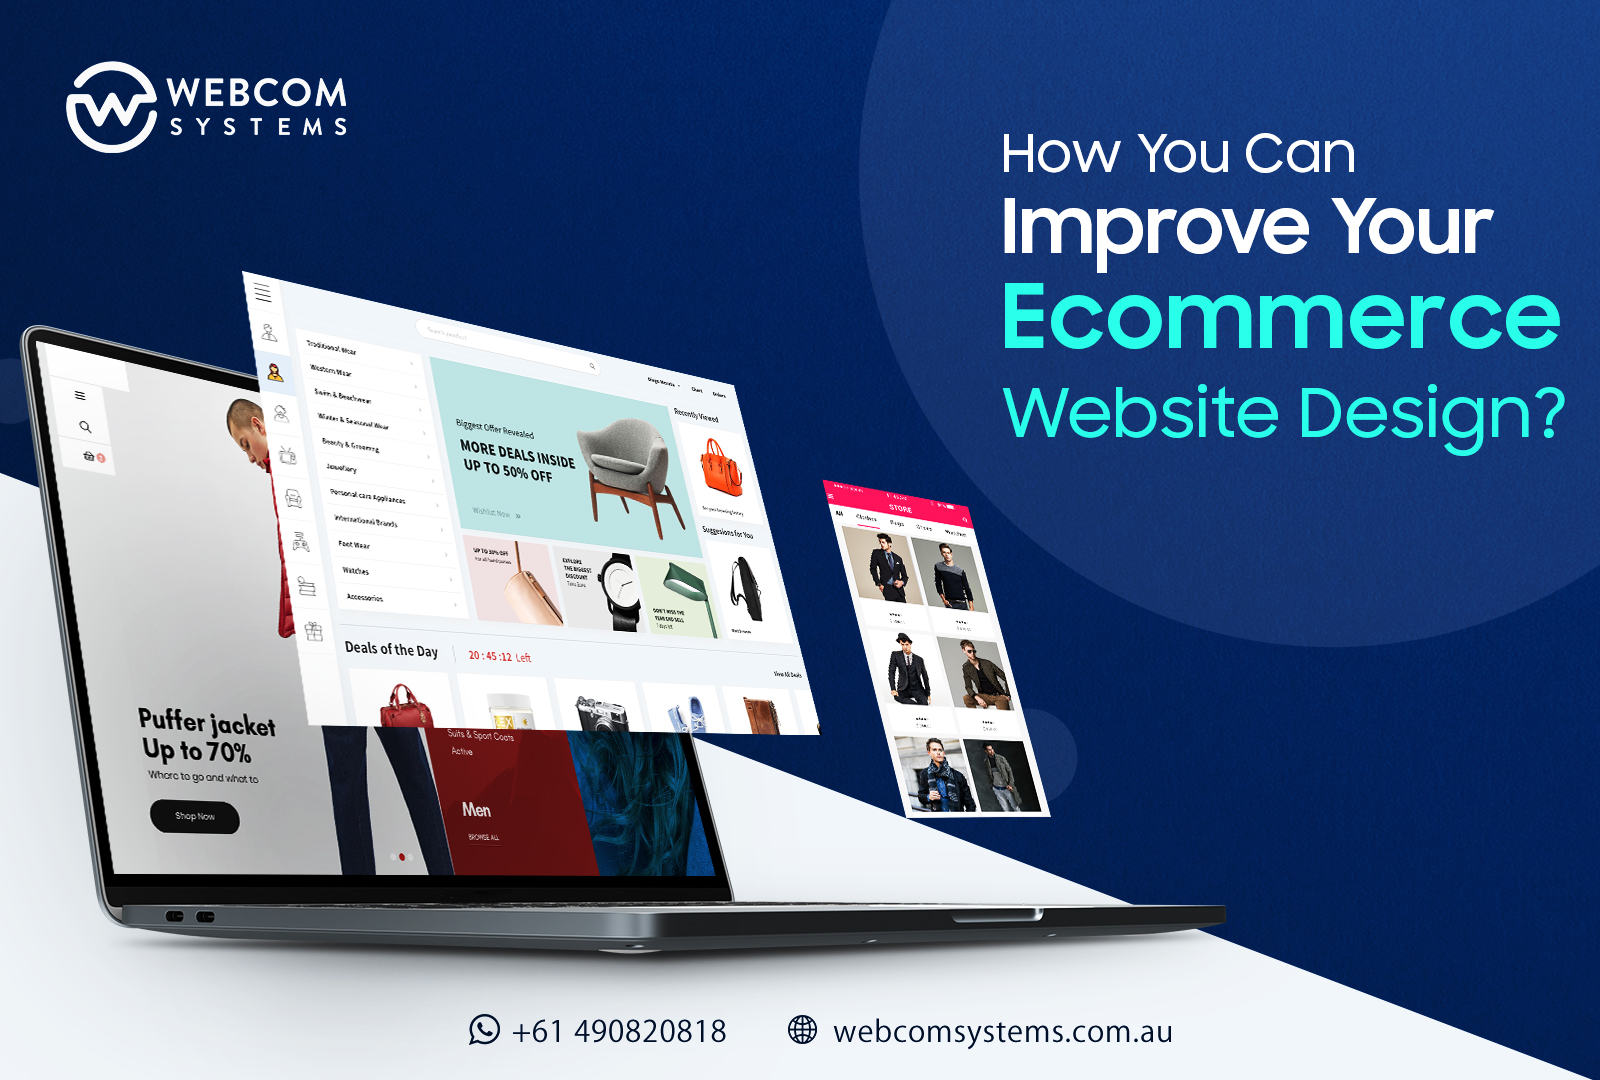 How You Can Improve Your Ecommerce Website Design?